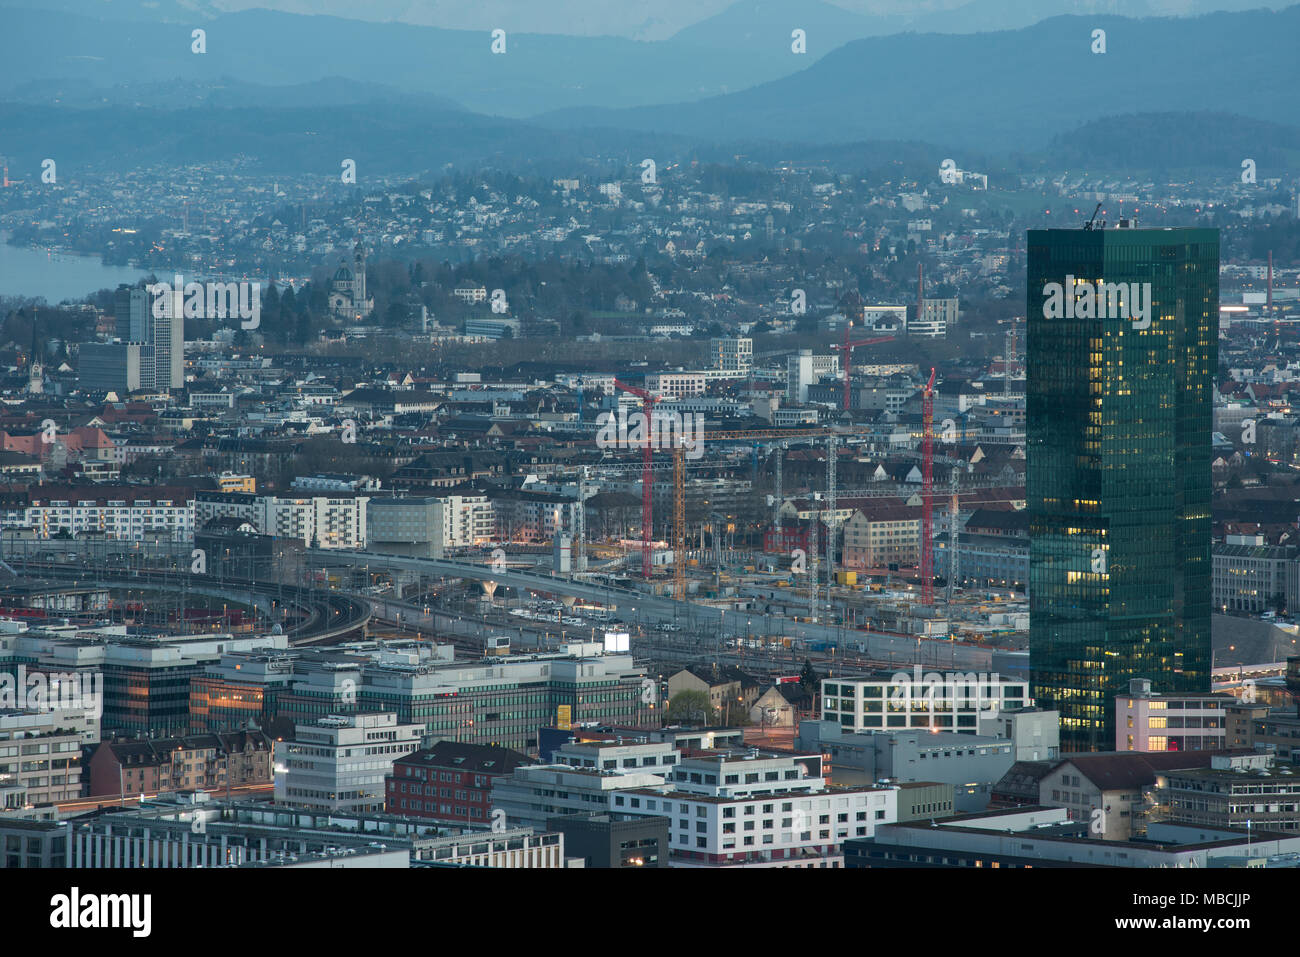 zurich cityscape at night - Stock Image